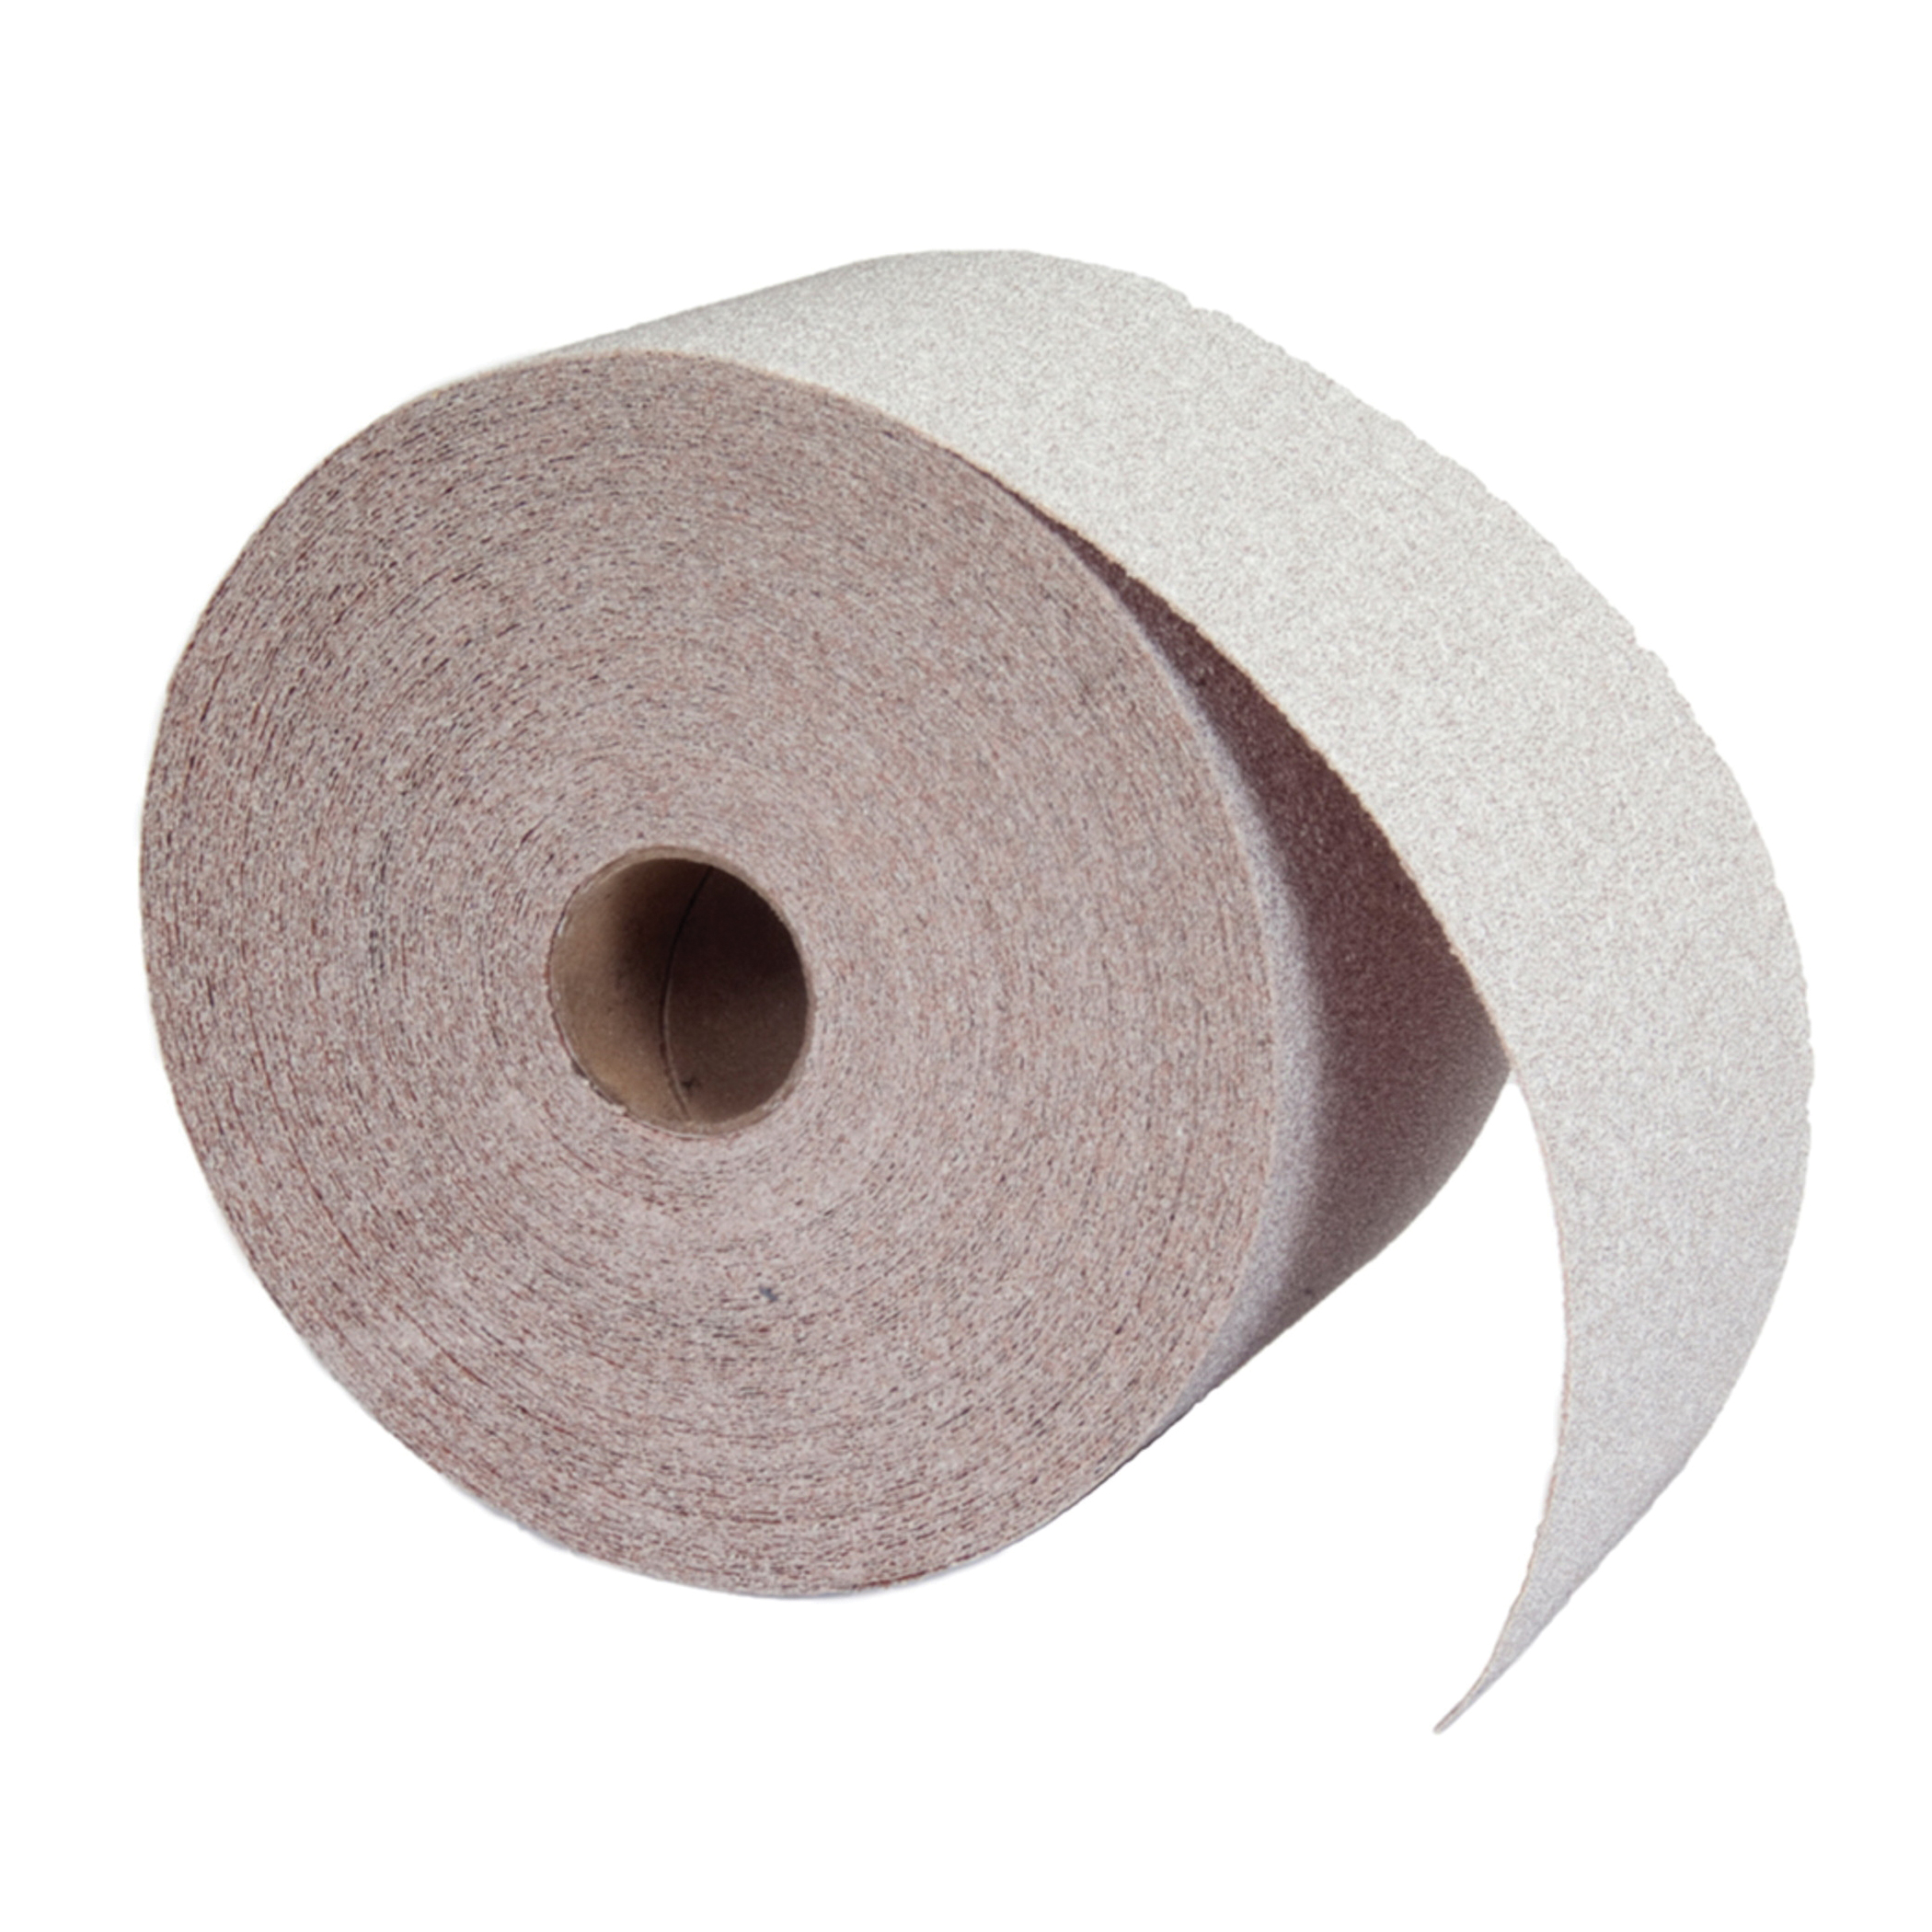 Norton® 66261131691 OP A275 Coated Abrasive Roll, 25 yd L x 2-3/4 in W, 80 Grit, Coarse Grade, Aluminum Oxide Abrasive, Anti-Loading Paper Backing